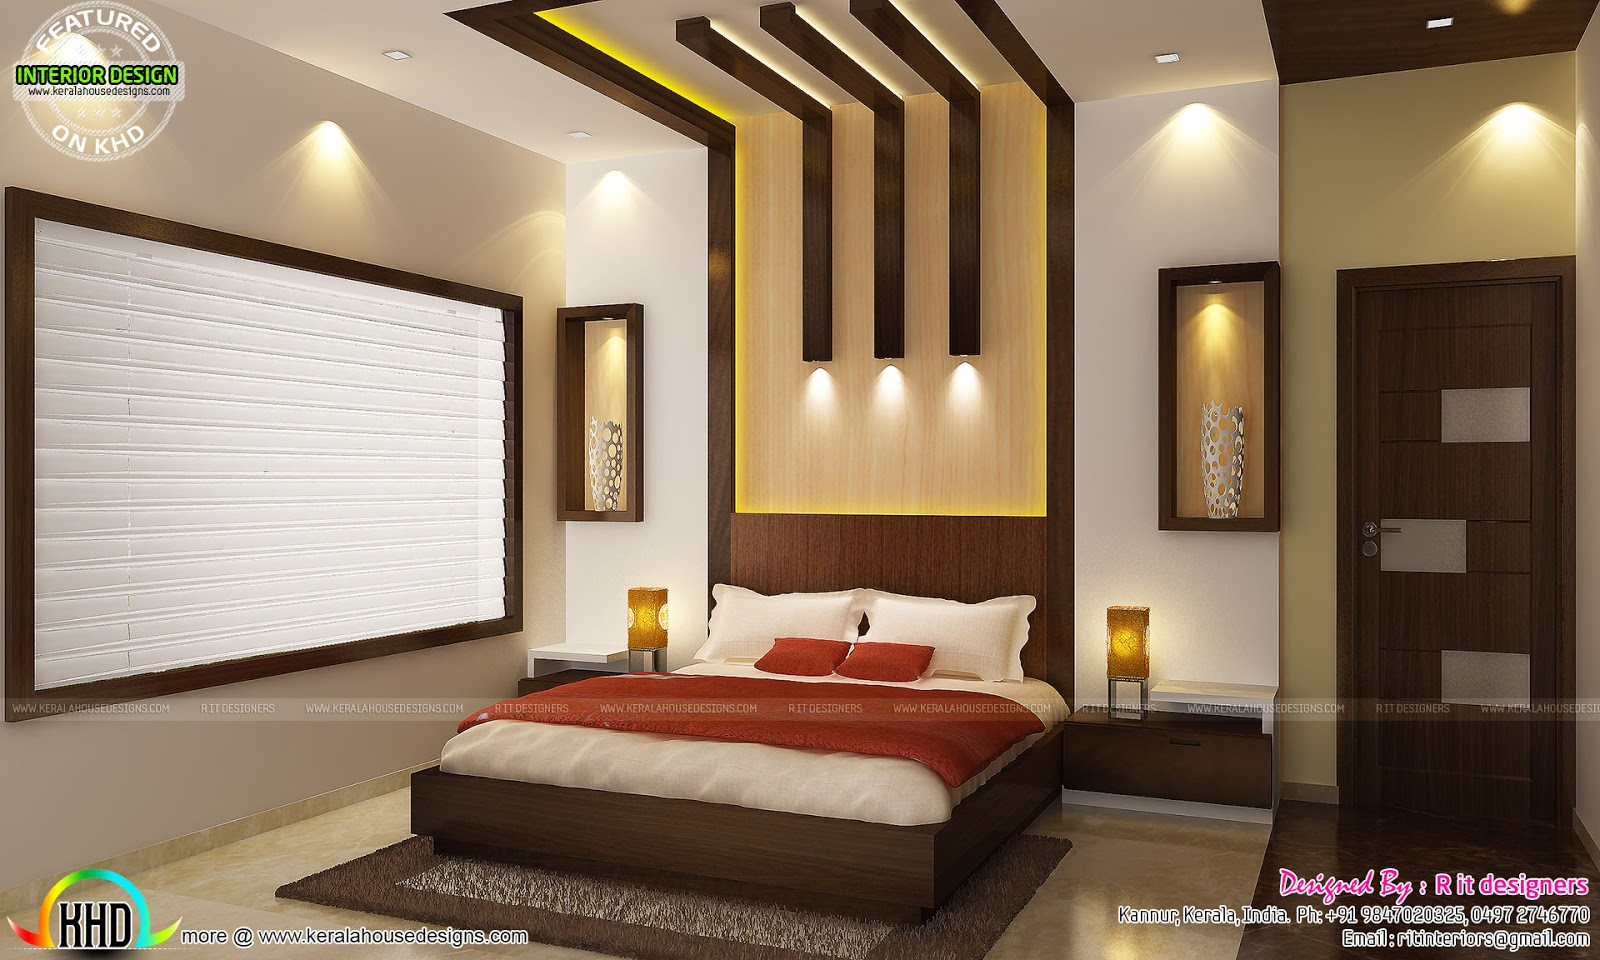 Kitchen living bedroom dining interior decor kerala for Interior design for living room and bedroom